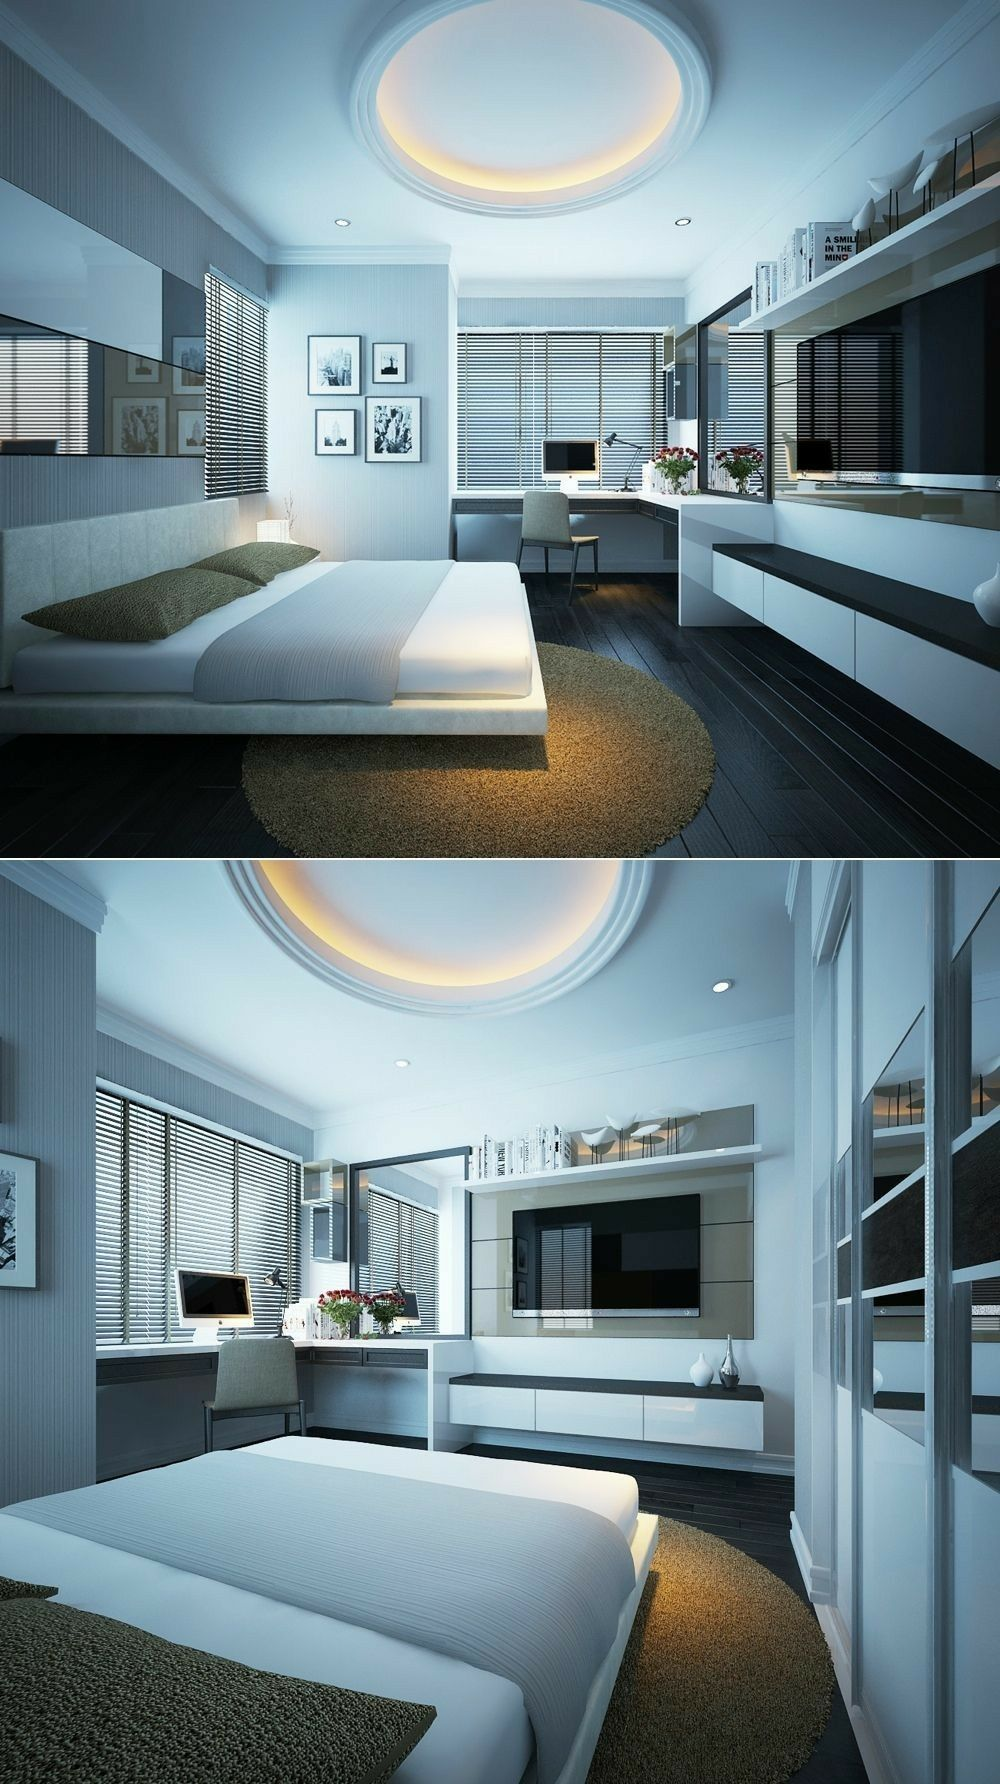 Ceiling Light Luxury Bedroom Sets Modern Luxurious Bedrooms Contemporary